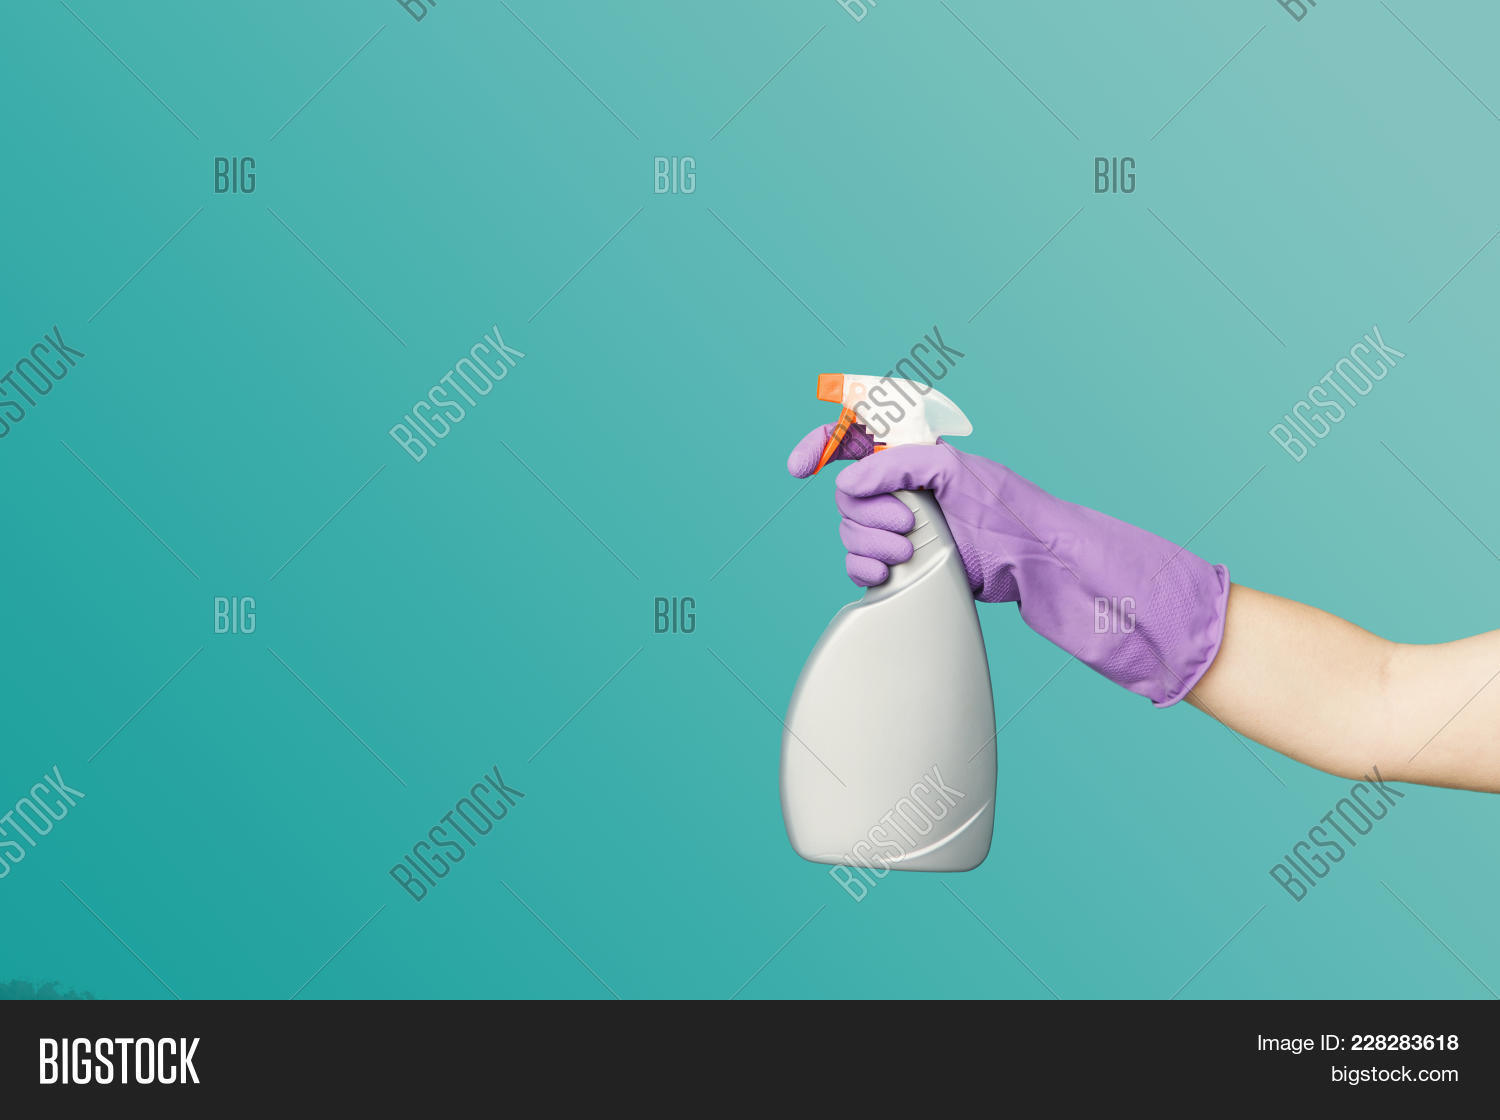 A Hand In Purple Glove Holding A Spray Of Cleaning Fluid On A Blue Background, Copy Space. Household